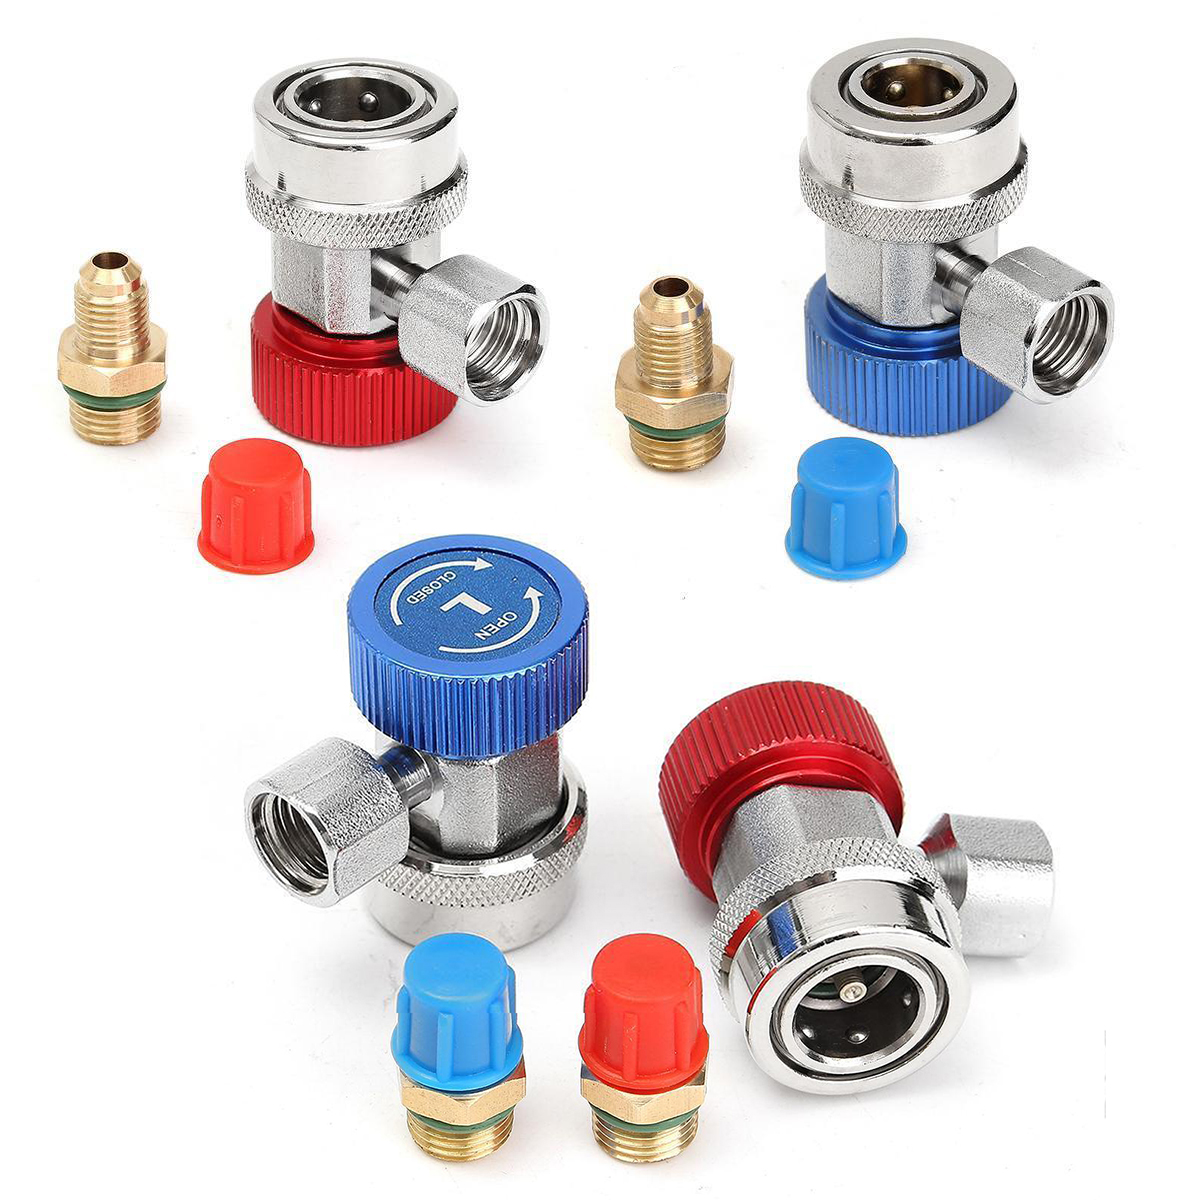 R134A High Low Adjustable Quick Coupler Connector Adapters Car AC Air Conditioning Refrigerant Manifold Gauge Auto Set Mayitr раздвижной световой меч эпизод 8 star wars красный